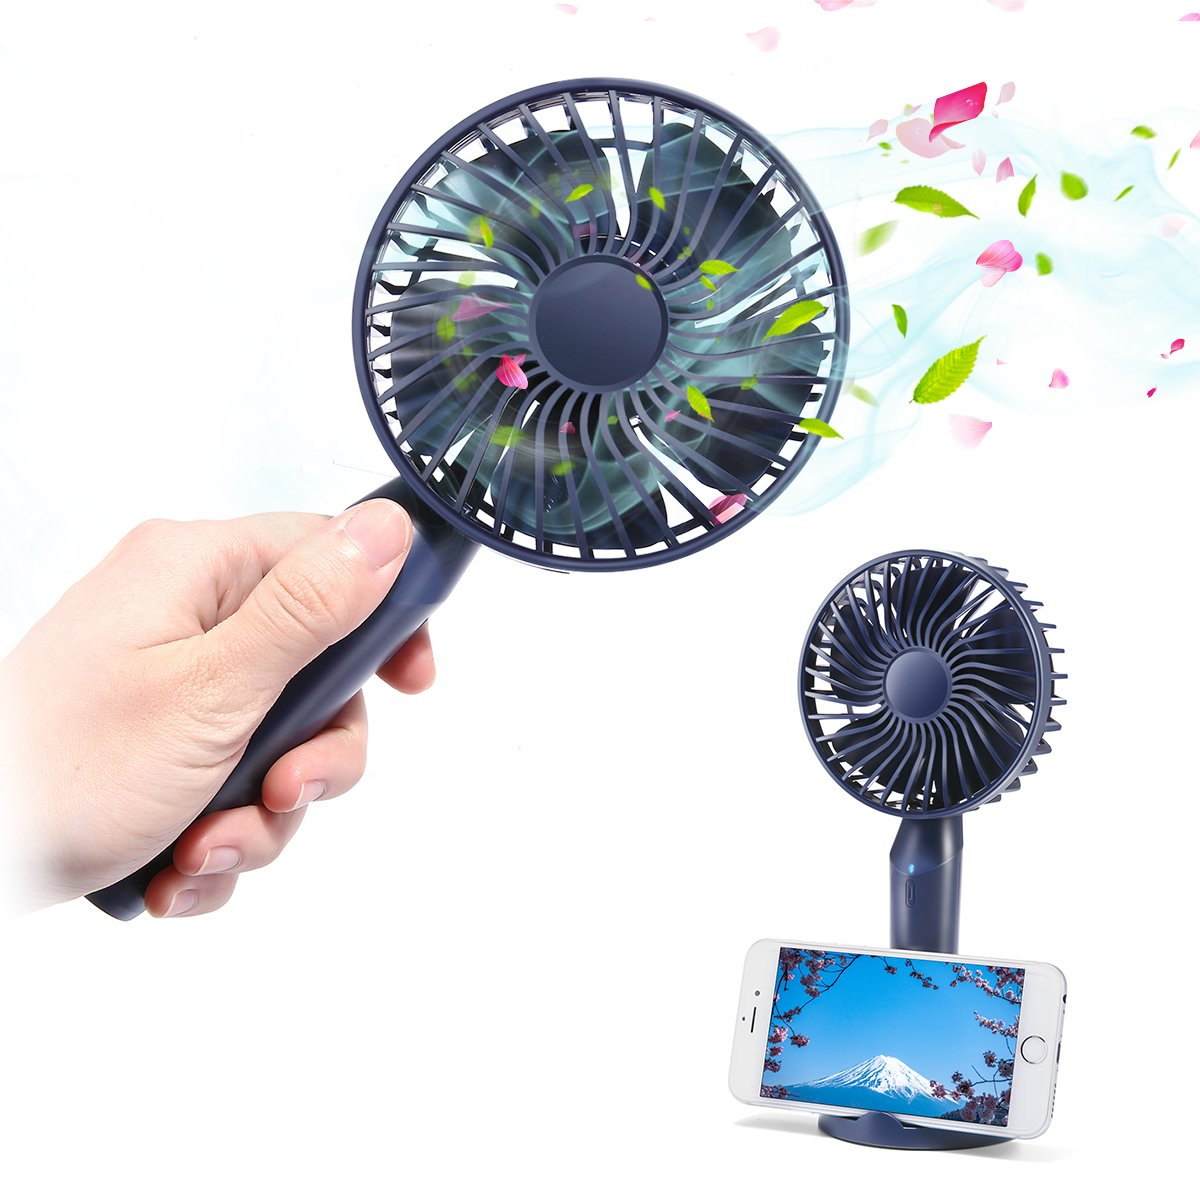 MECO ELEVERDE USB Desk Fan 6'' Portable Personal Fan Small Table Fan Cooling Fan with Handle USB Powered Great for Office, Travel, Camping. Fishing, Car, Gym, Outdoor, Kitchen